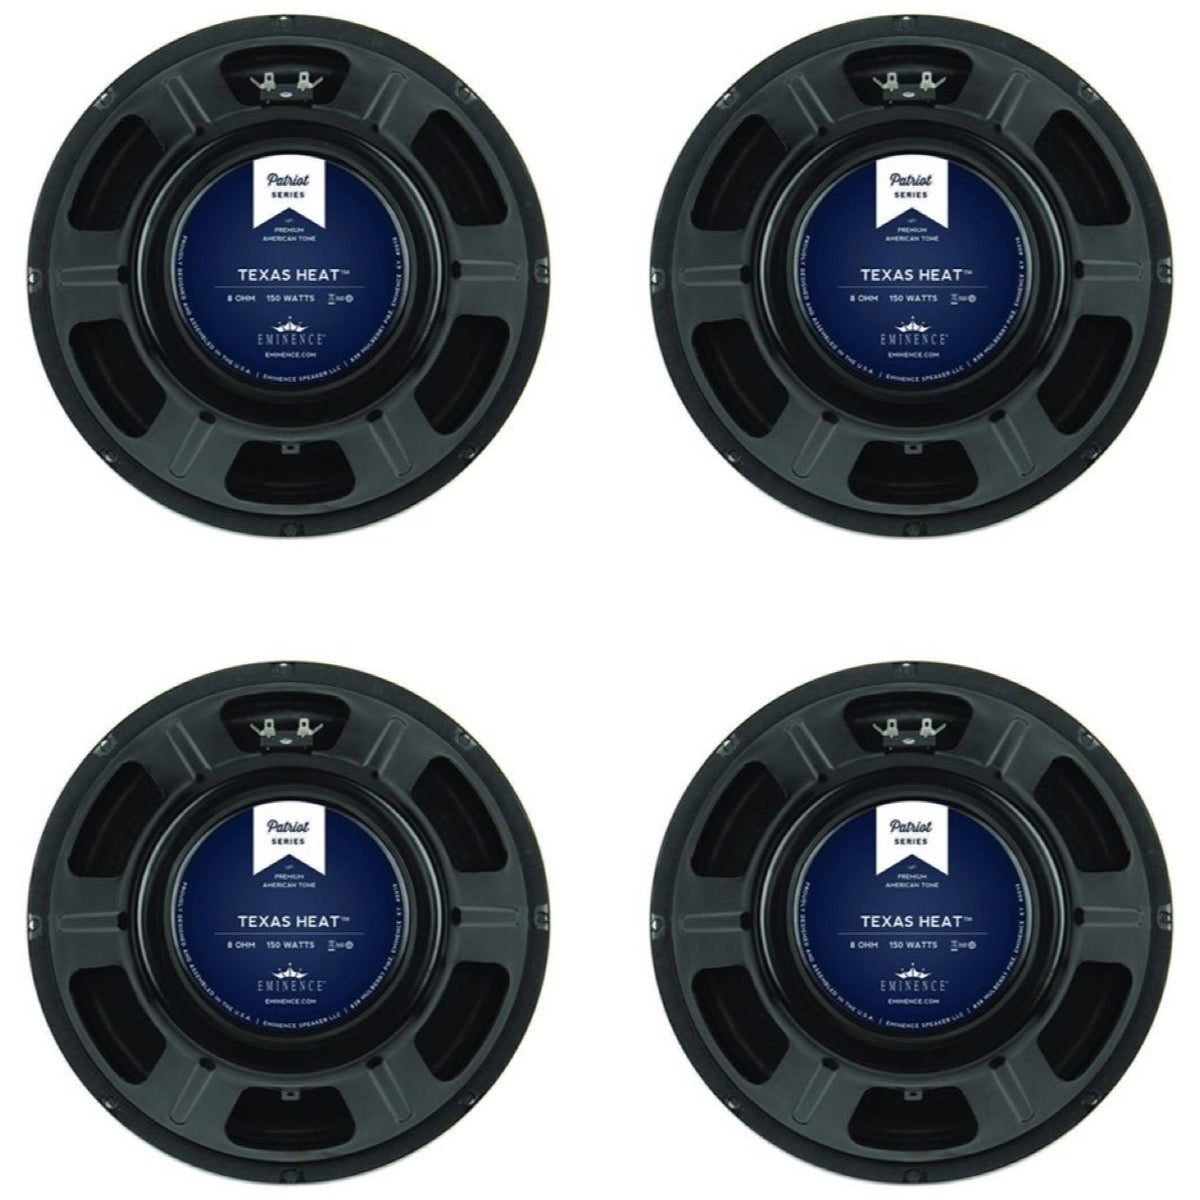 Eminence Texas Heat Patriot Guitar Speaker (150 Watts, 12 Inch), 16 Ohms, 4-Pack